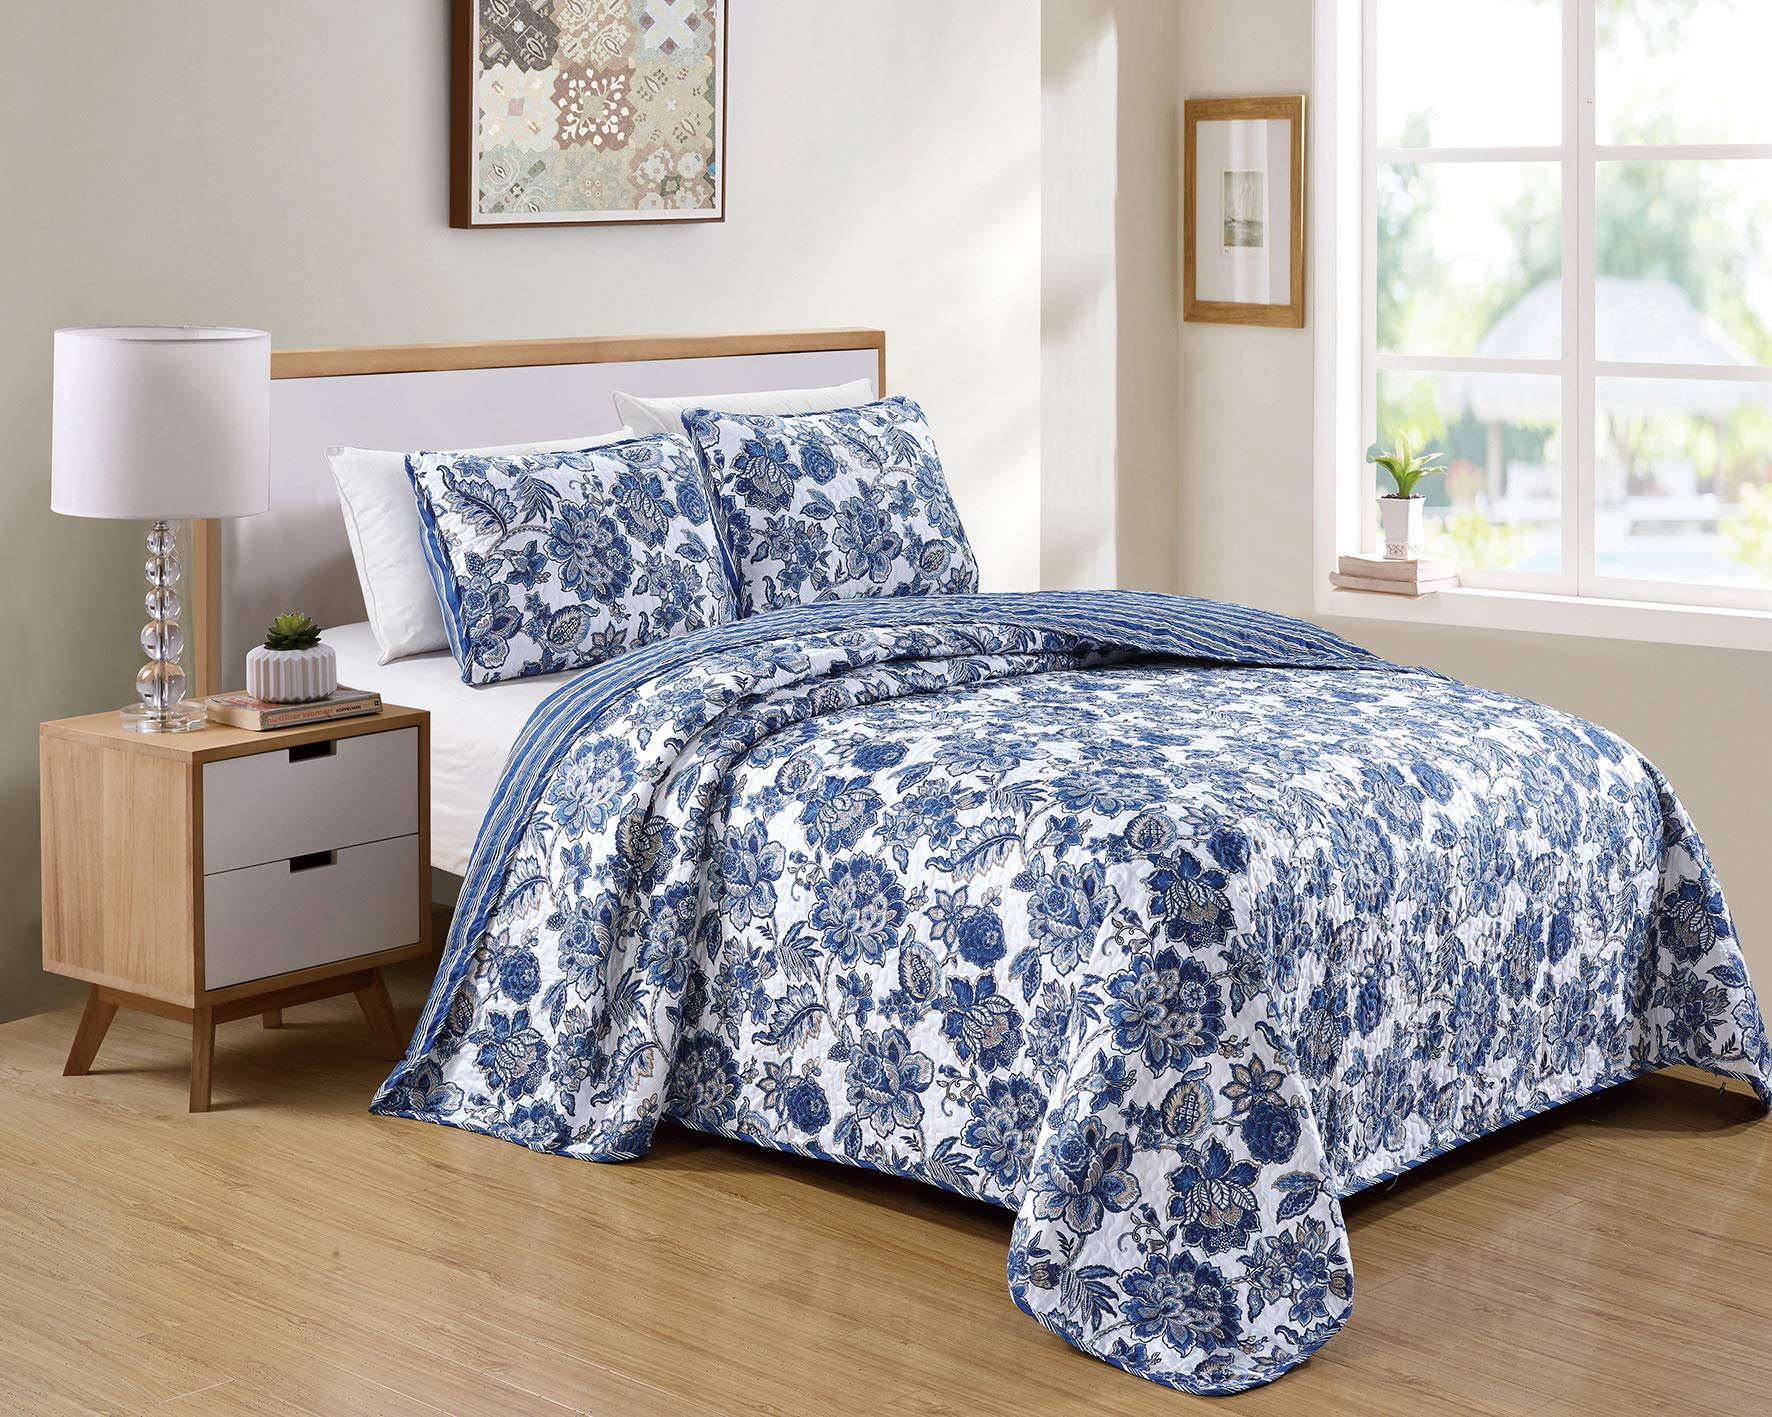 Kids Zone Home Linen 2 Piece Twin/Twin Extra Long Bedspread Set Floral Printed Pattern Blue White with Some Beige by Kids Zone Home Linen